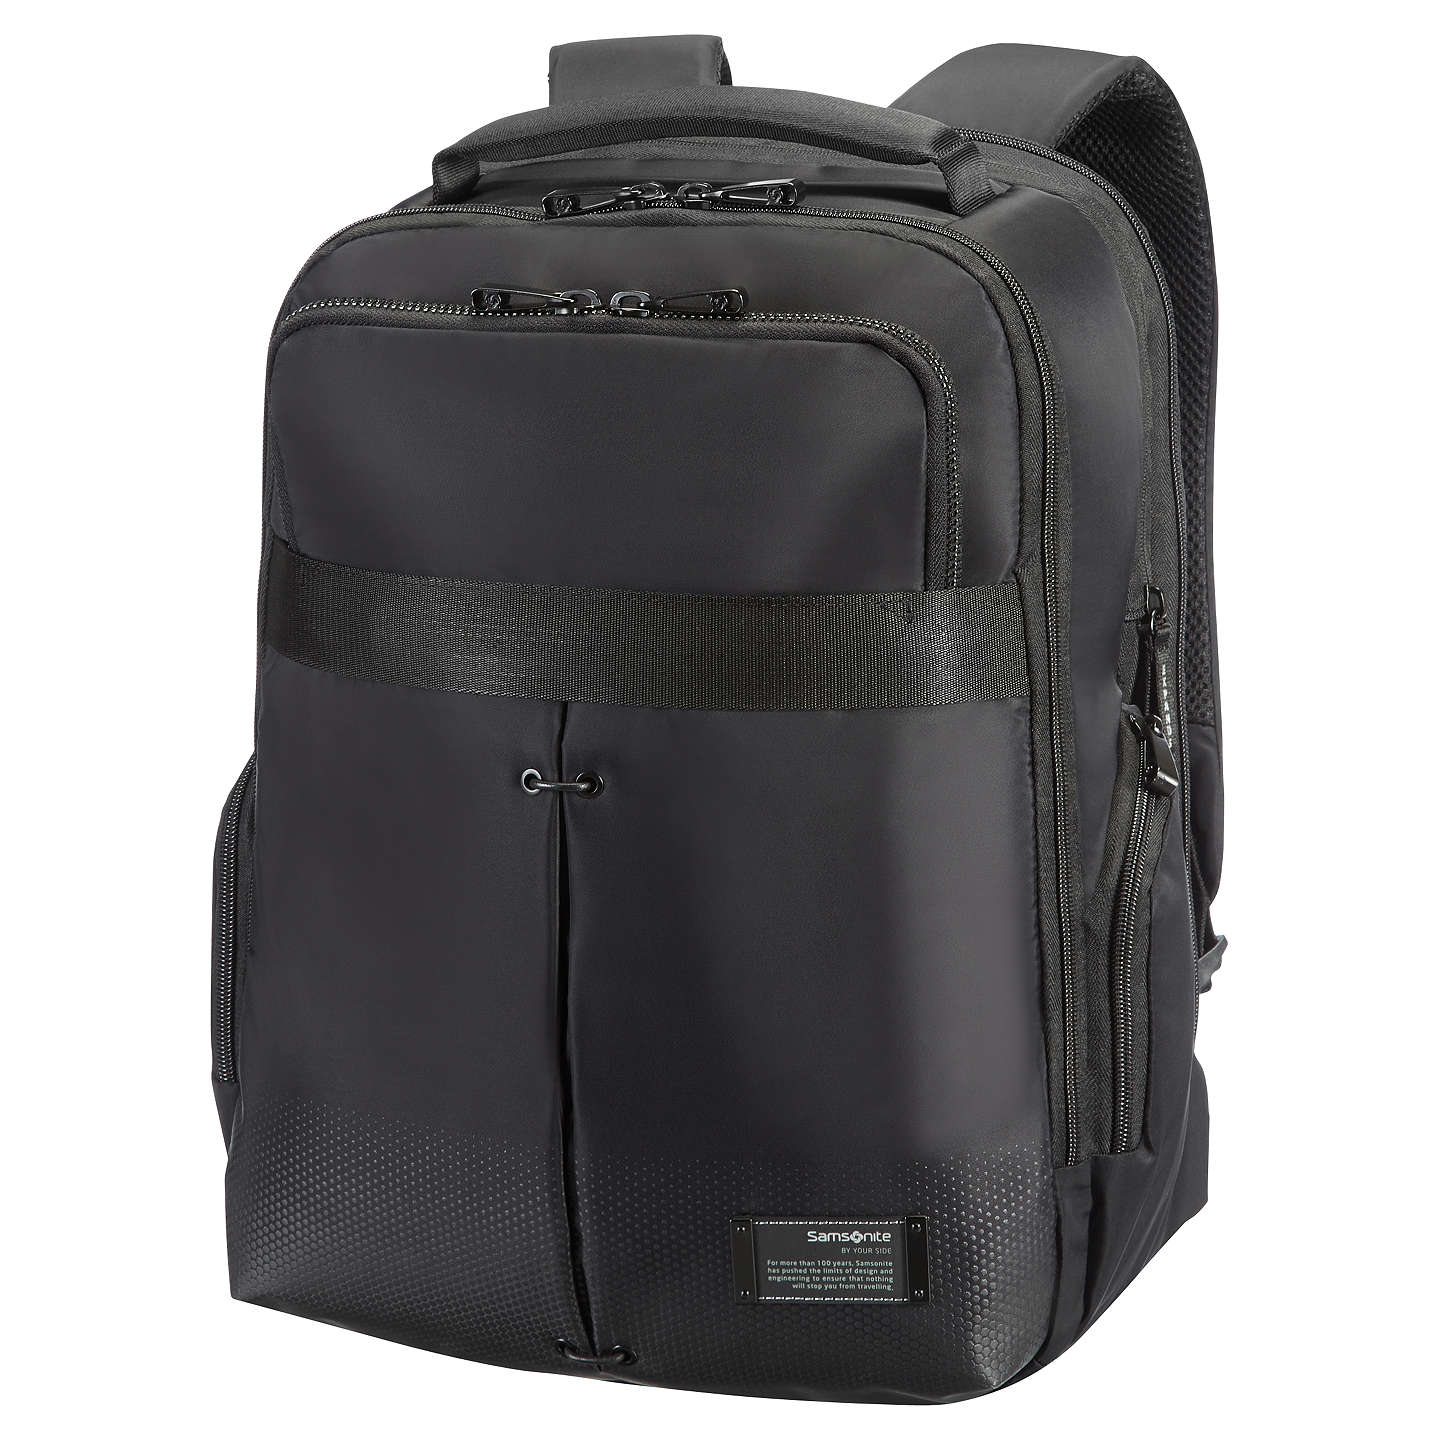 Samsonite Cityvibe 16 Quot Laptop Backpack At John Lewis